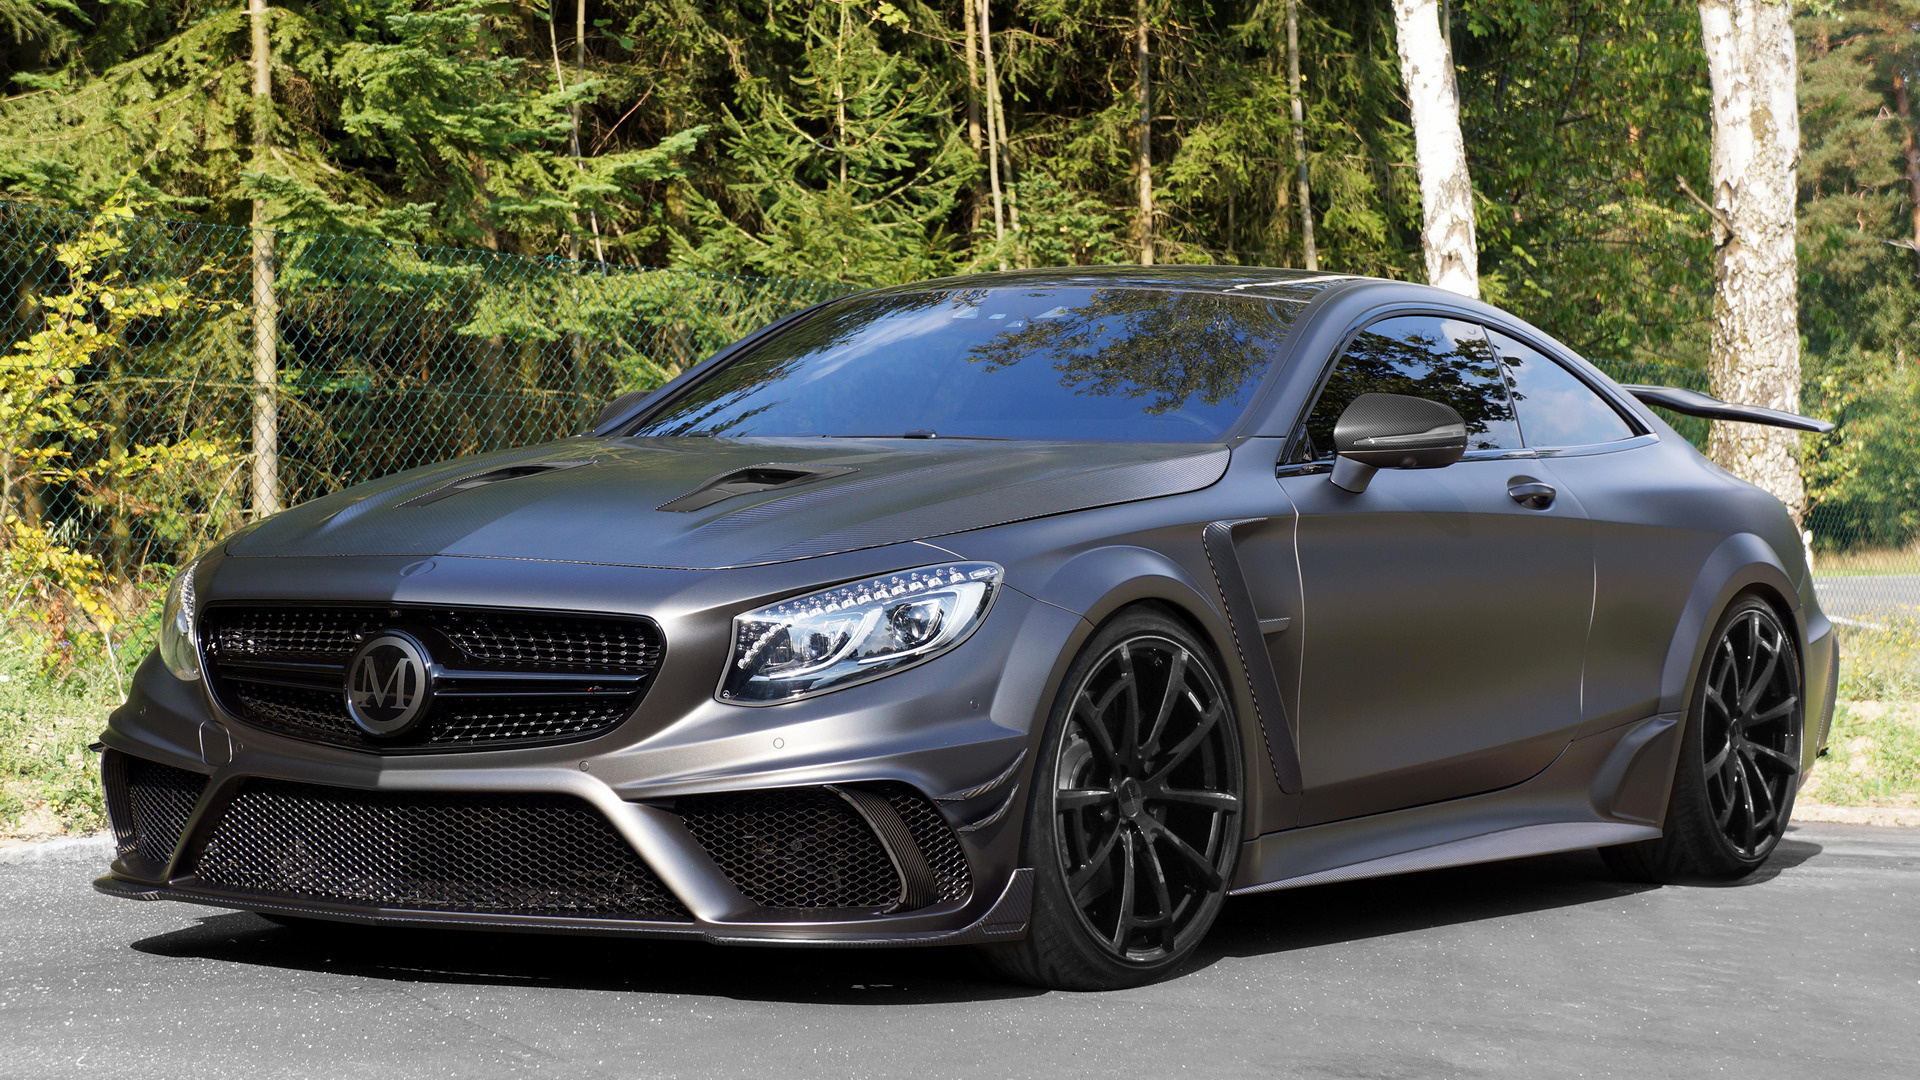 2015 Mercedes Benz S 63 Amg Coupe Black Edition By Mansory